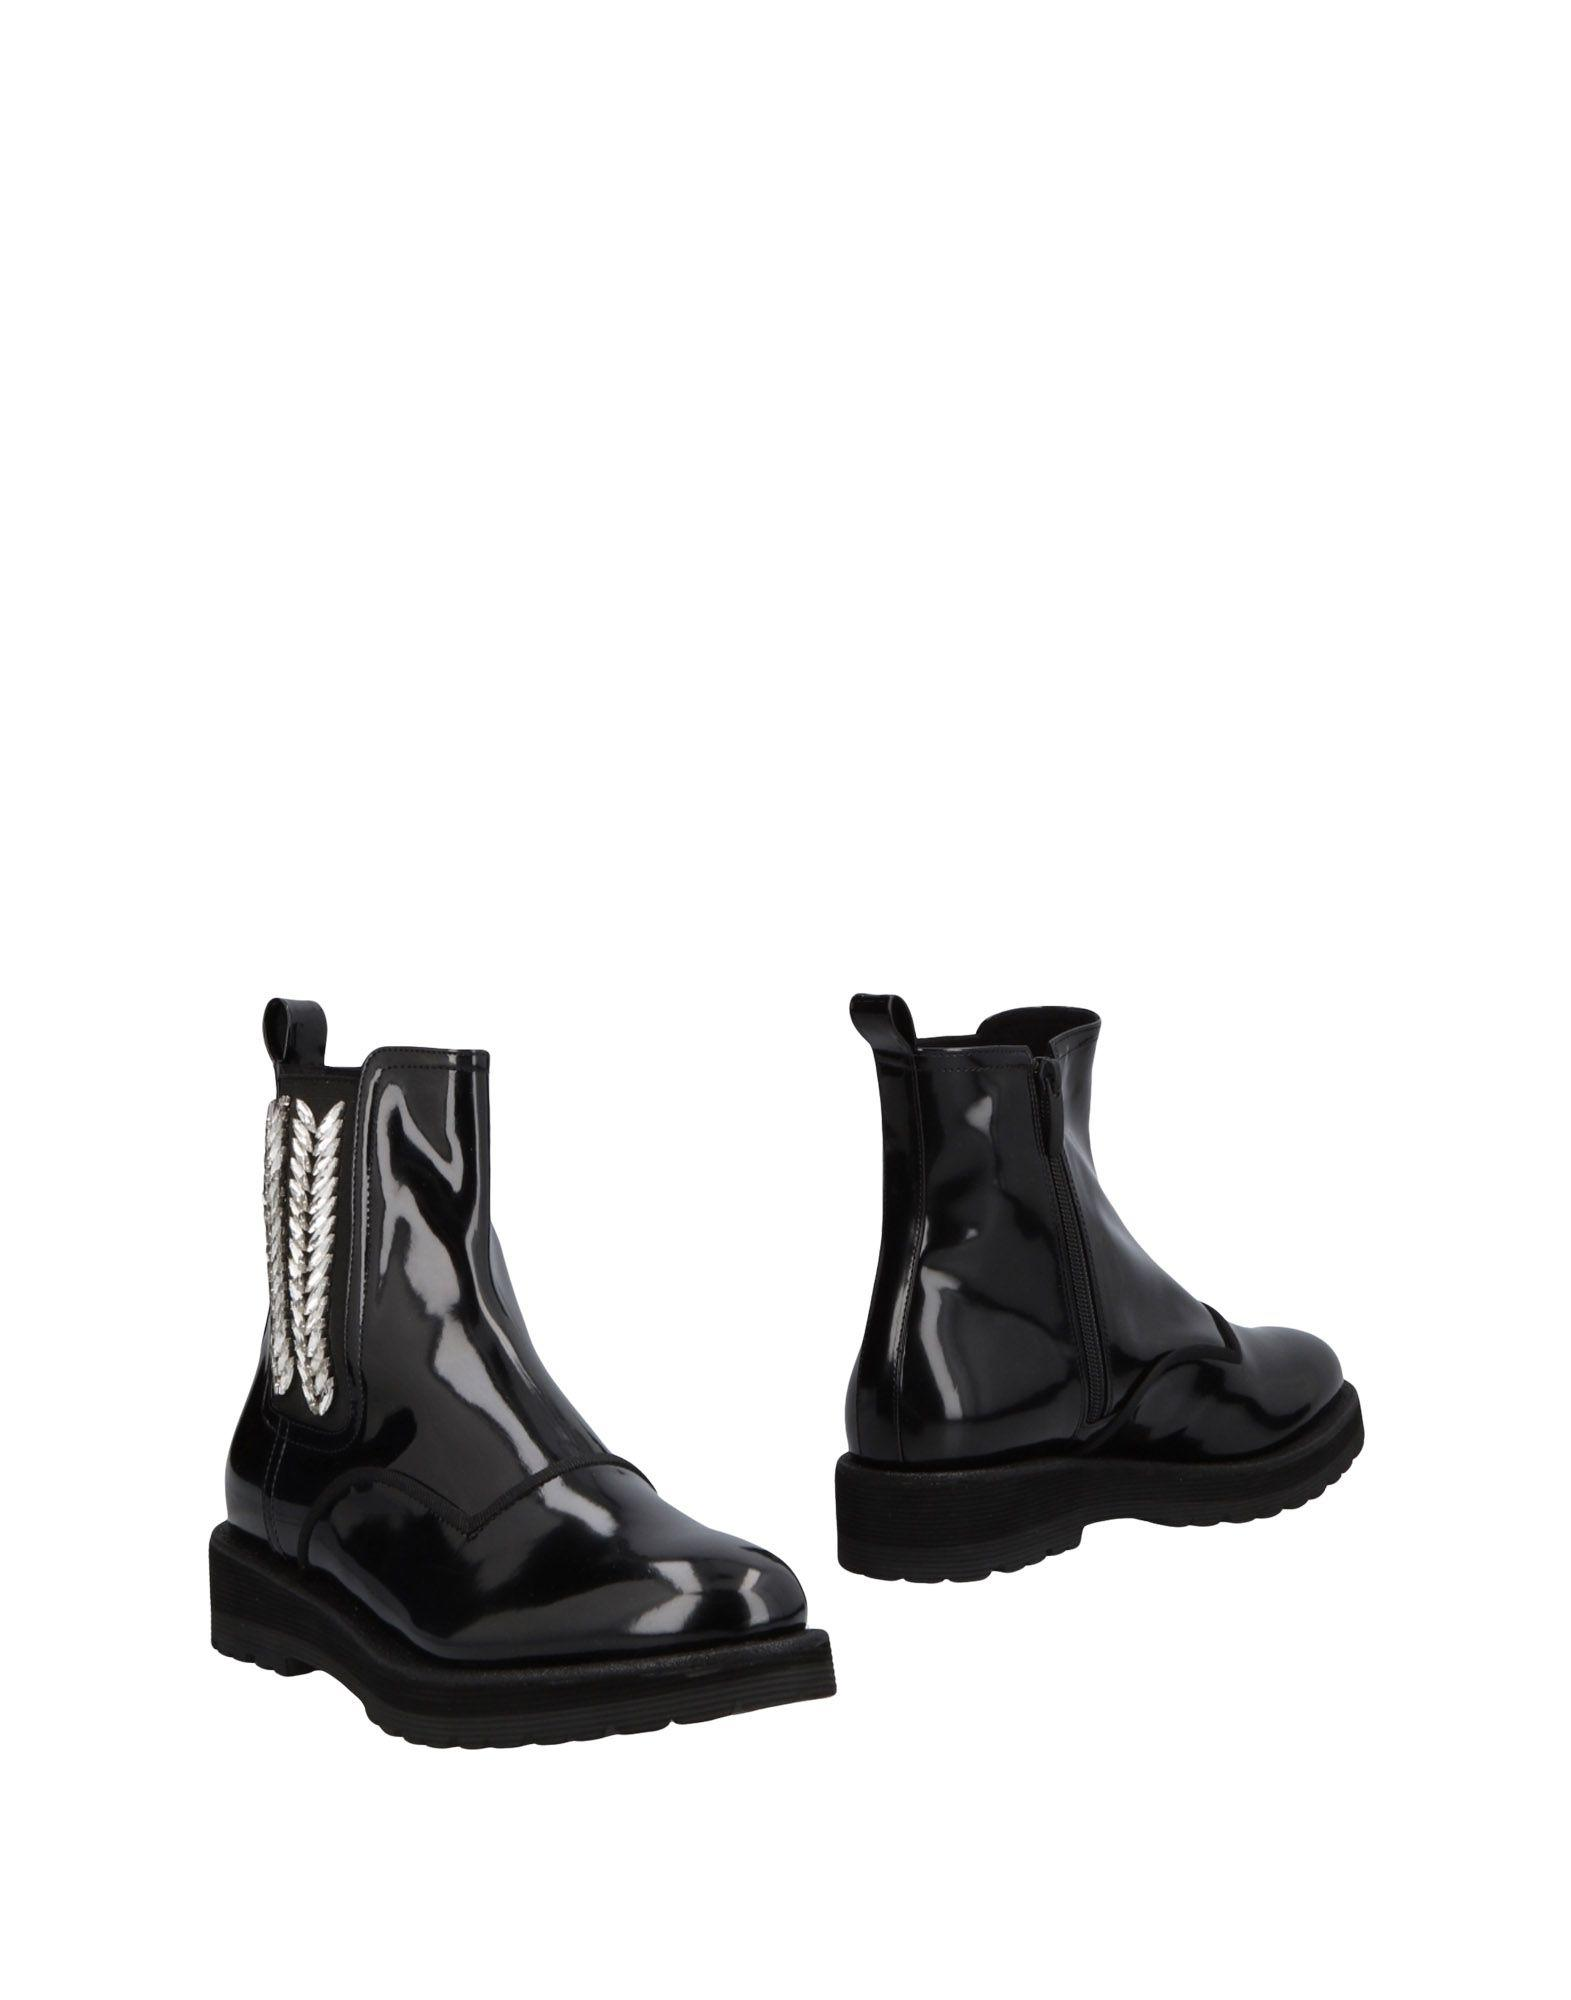 In Bonnie Black Lyst Ankle Suecomma Boots Stndq66wx